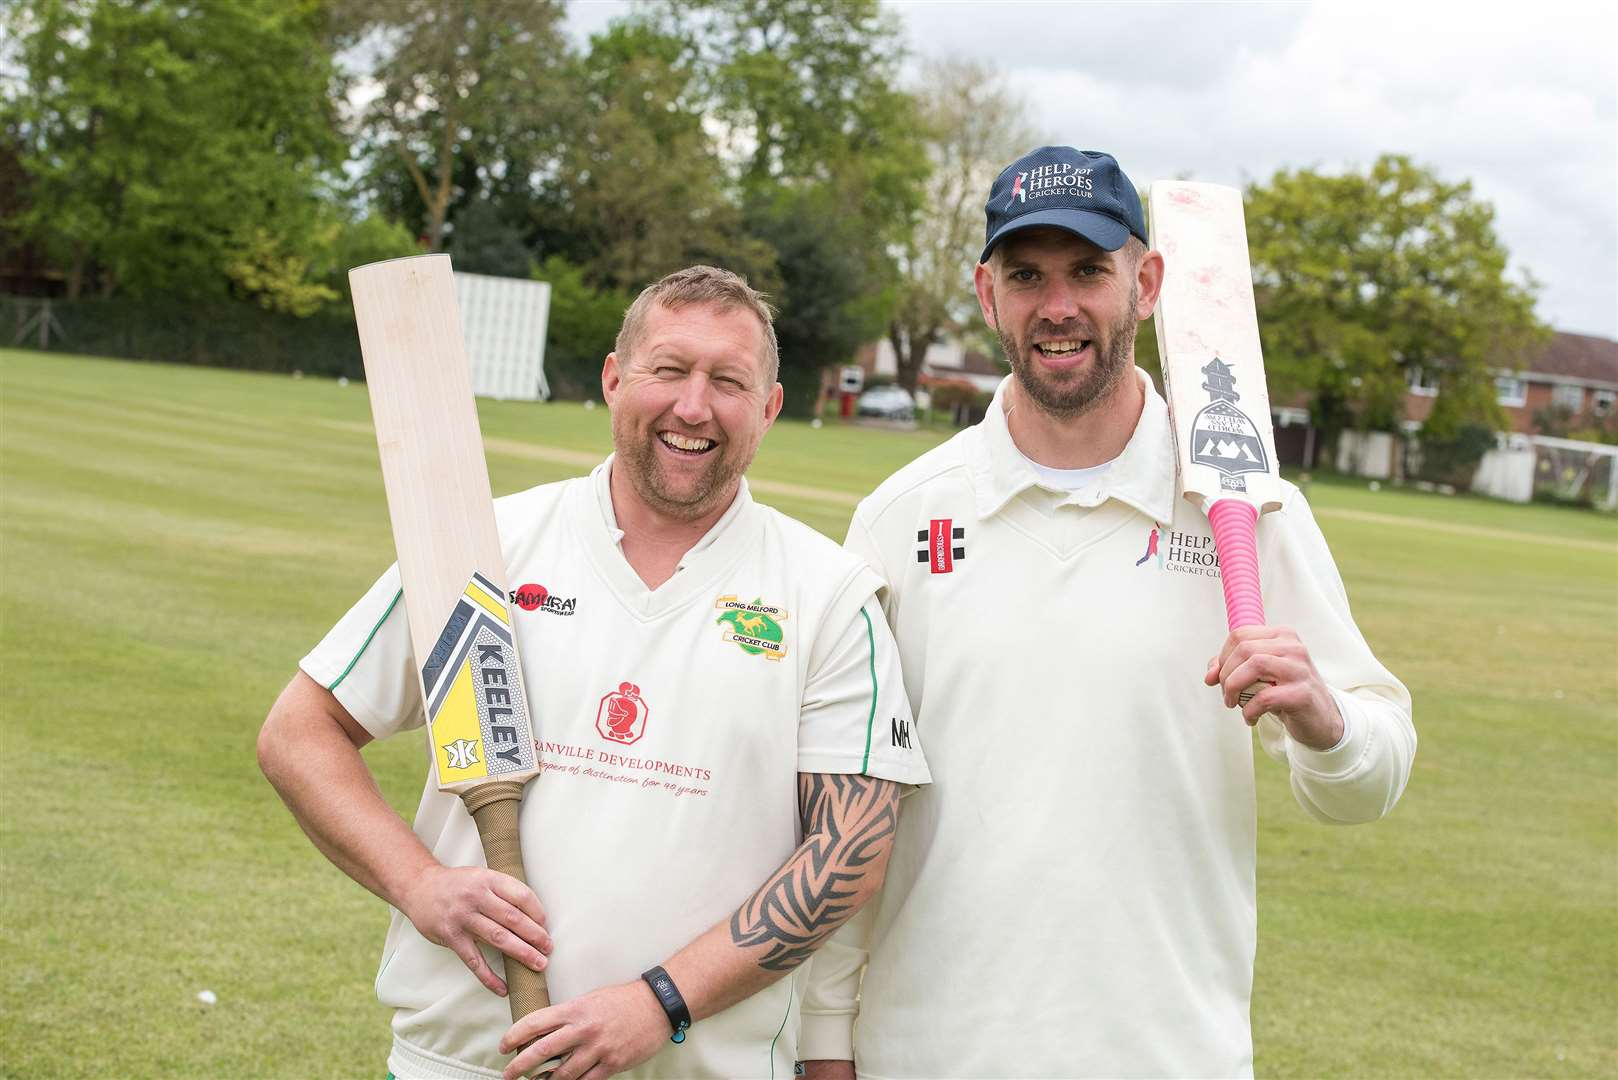 Long Melford Cricket Club is hosting the Help for Heroes cricket teams, which are comprised of former military personnel, for two exhibition games, in order to raise money for the charity. Captains Matt Hoadley and Jason Zawiasa. Picture by Mark Westley. (9755249)